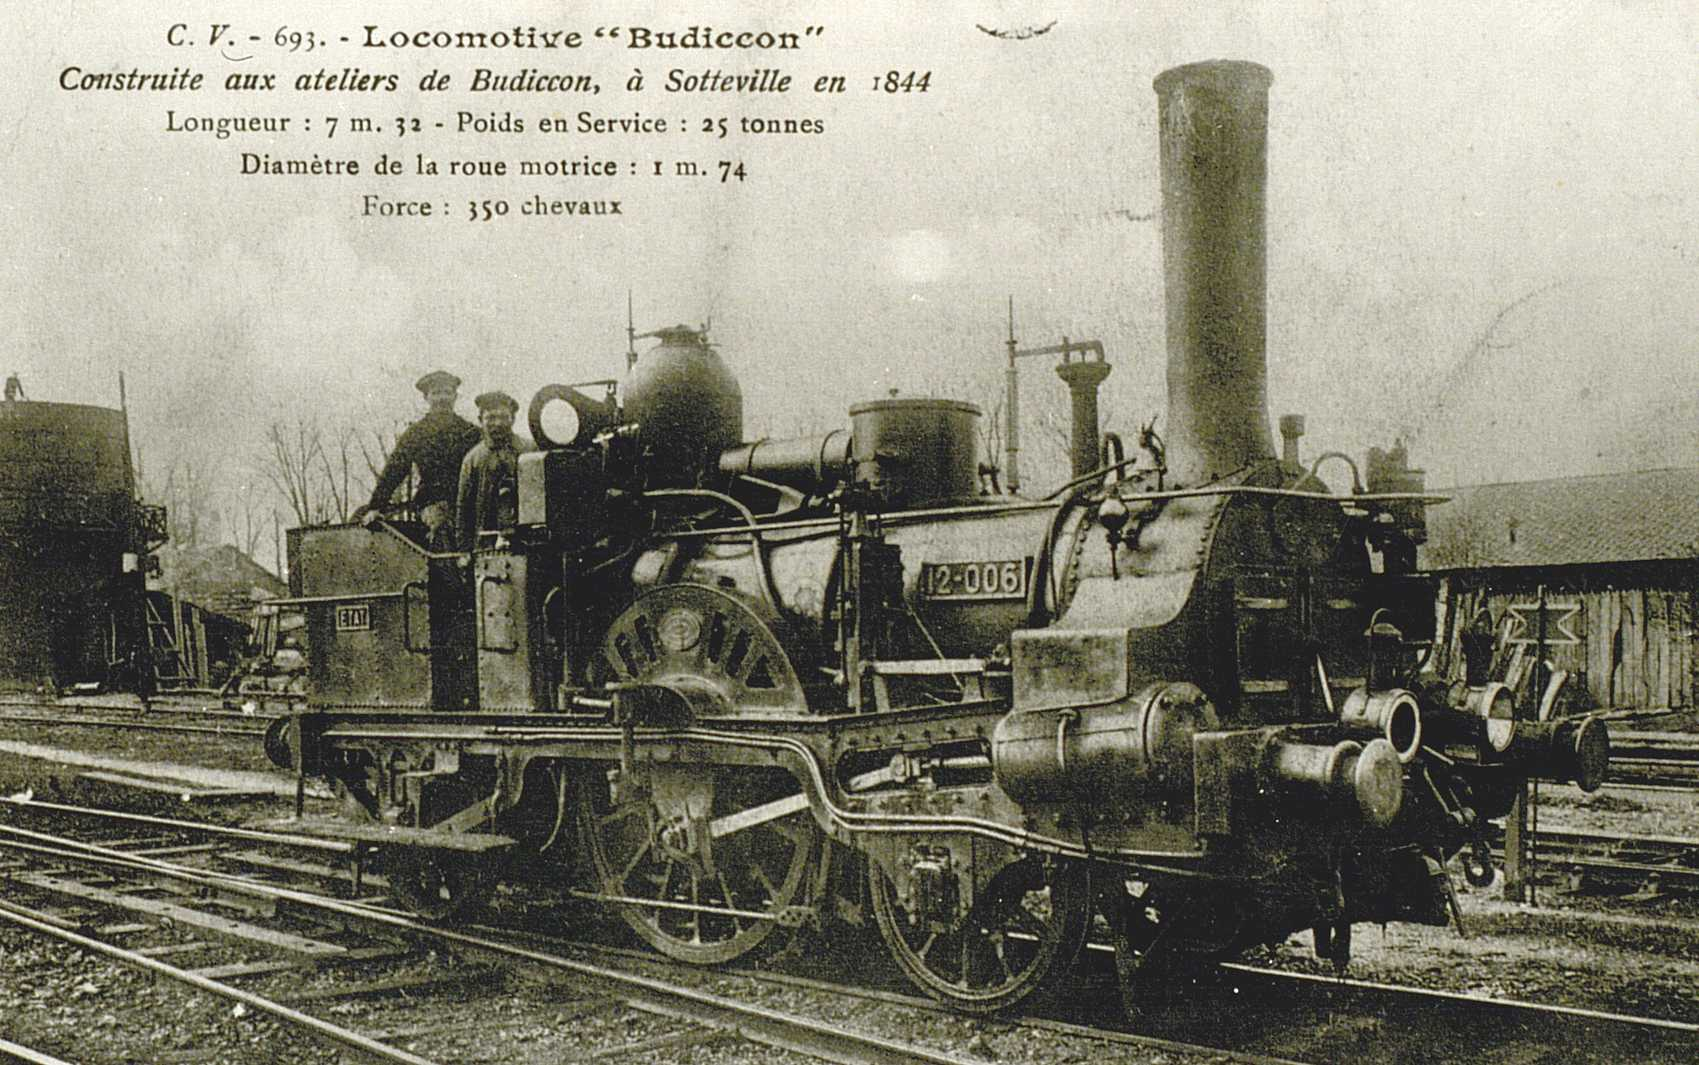 Budiccom locomotive